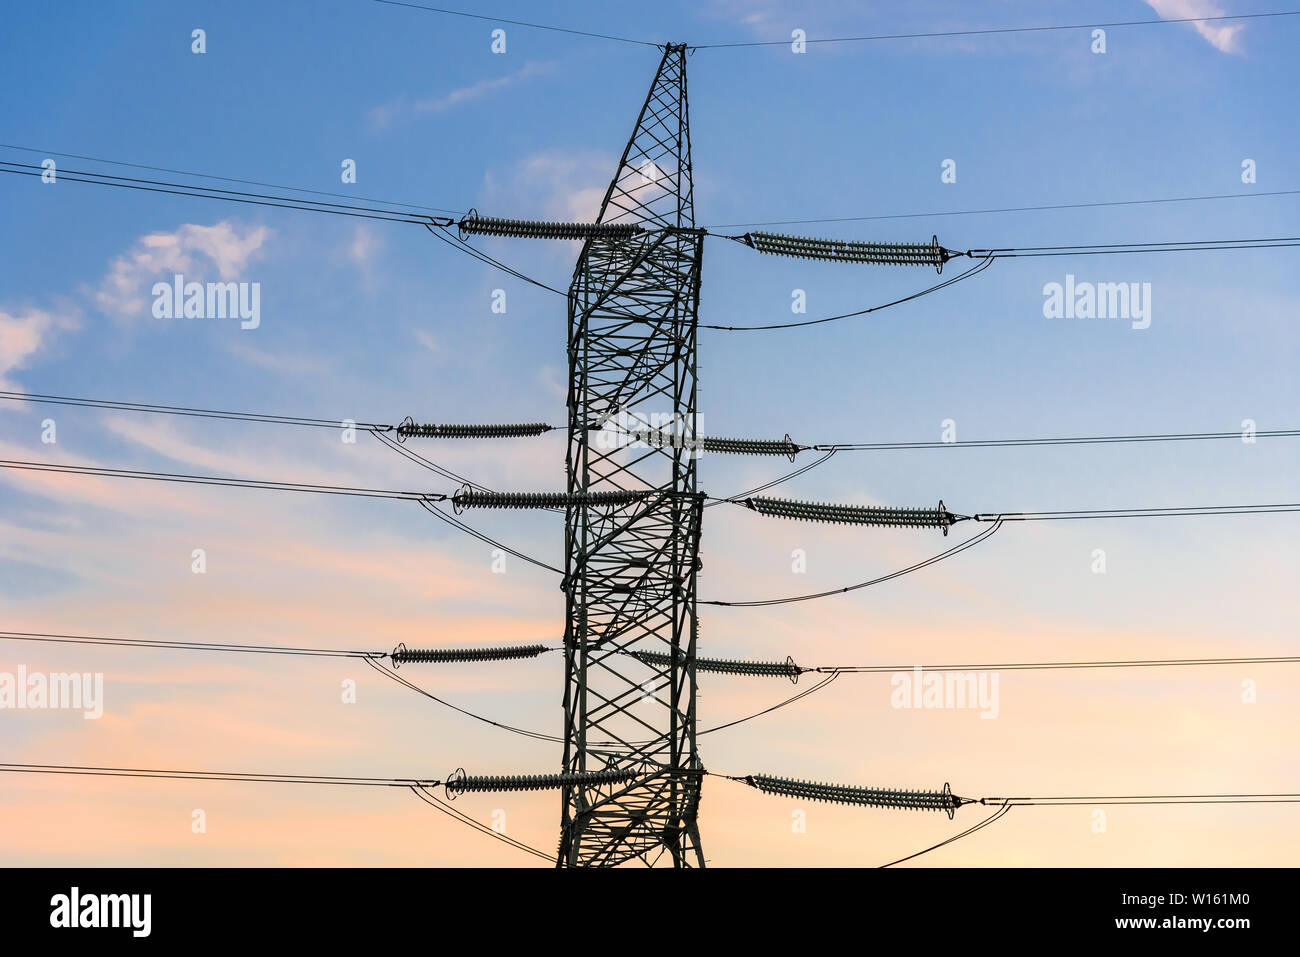 Closeup of electricity pylon and high voltage power lines at sunset Stock Photo